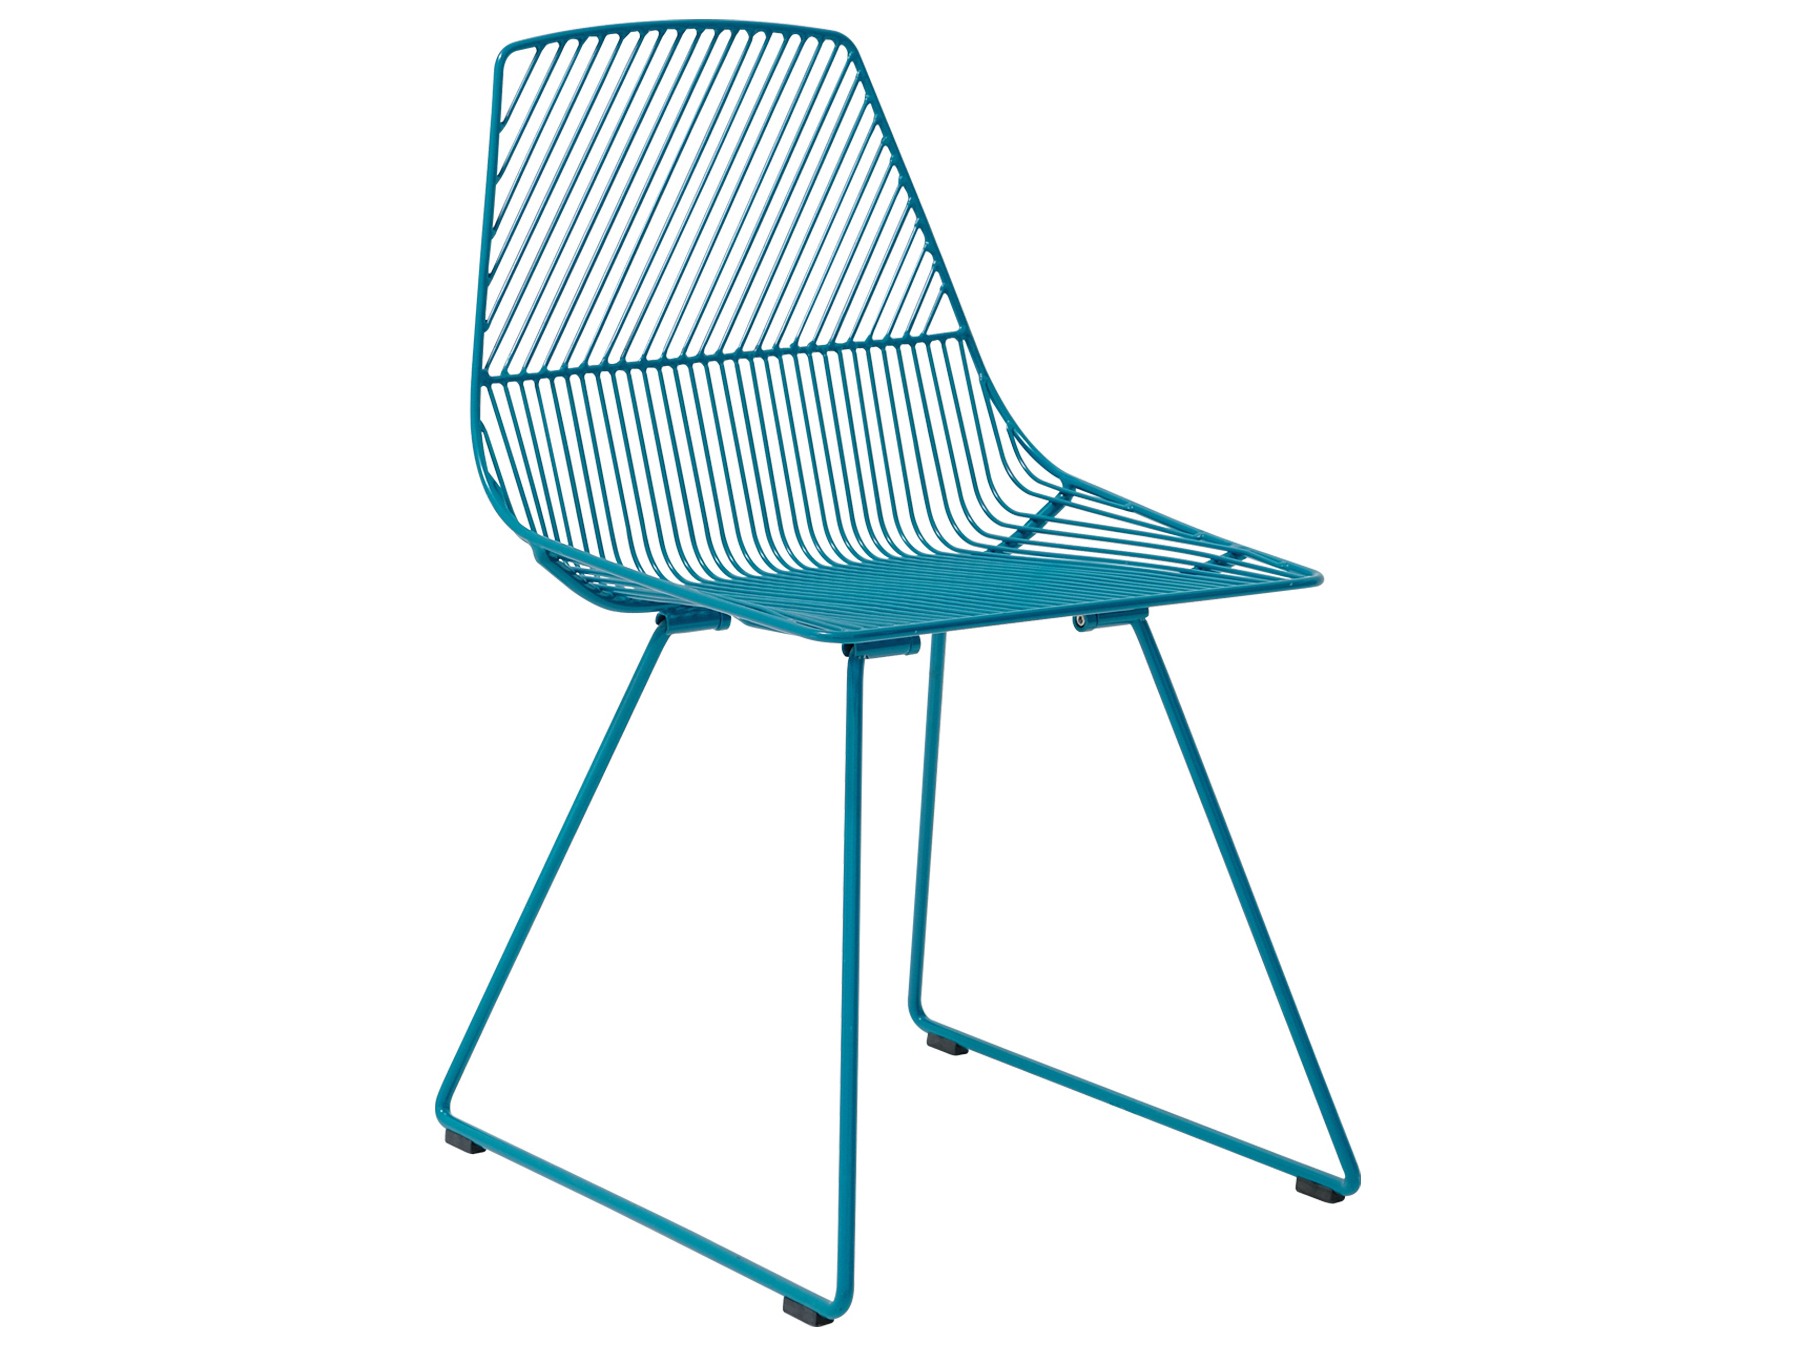 Fine Bend Goods Outdoor Ethel Peacock Metal Dining Chair Sold In 2 Forskolin Free Trial Chair Design Images Forskolin Free Trialorg